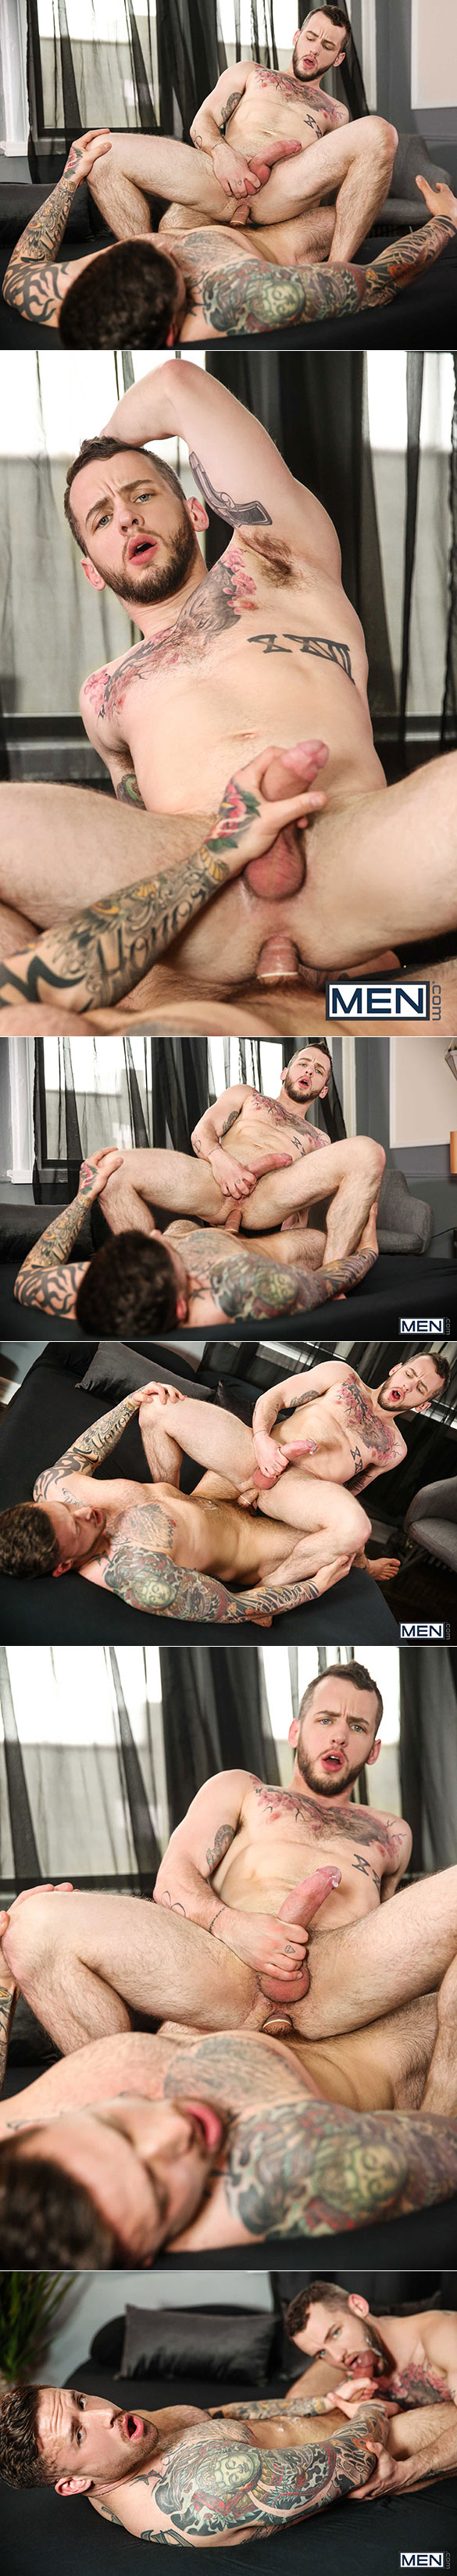 "Men.com: Jordan Levine pounds Colton Grey in ""Last Day on Earth, Part 1"""